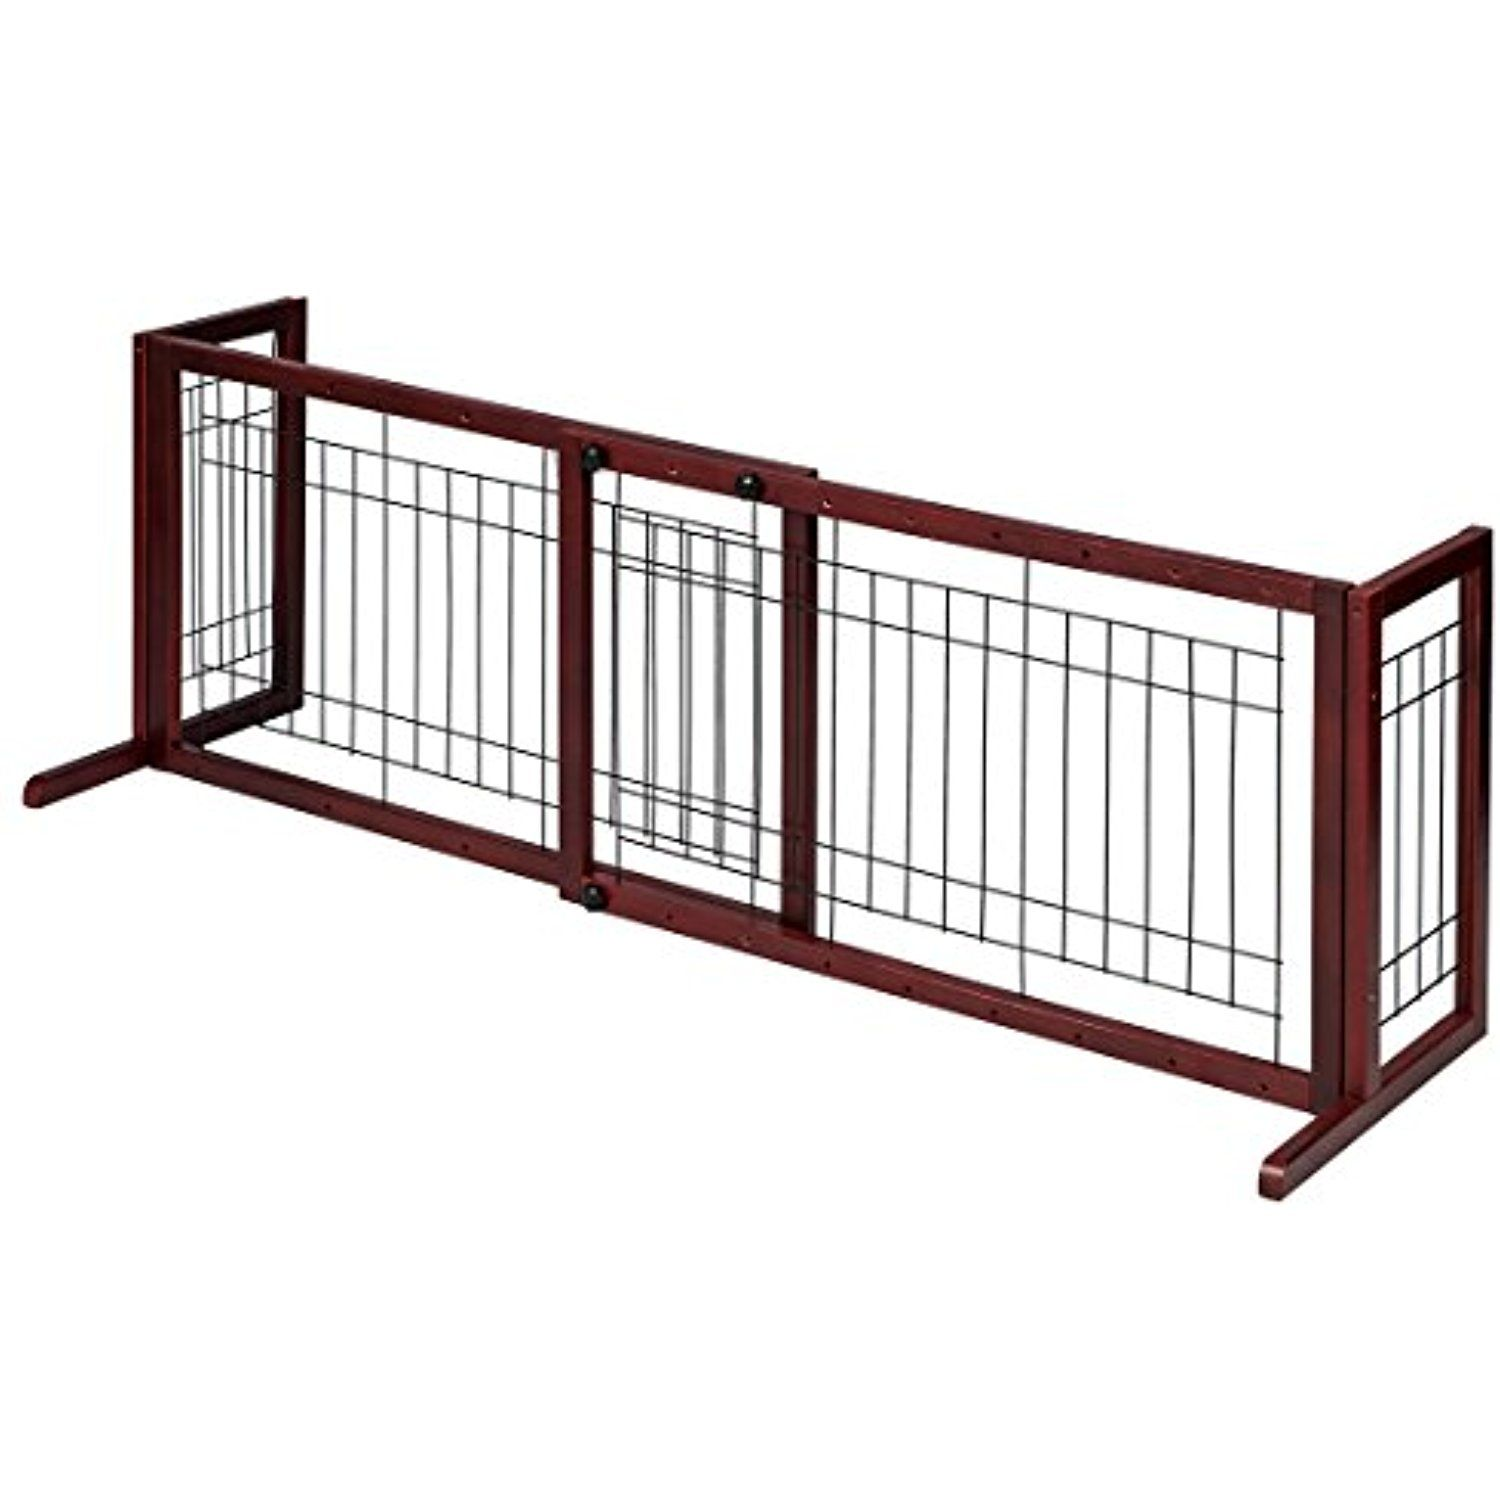 GOOD LIFE Wooden Fence Freestanding Pet Dog Gate Indoor Adjustable Gates  For Home Coffee Color 72 Inch PET344 ** Check This Awesome Product By Going  To The ...